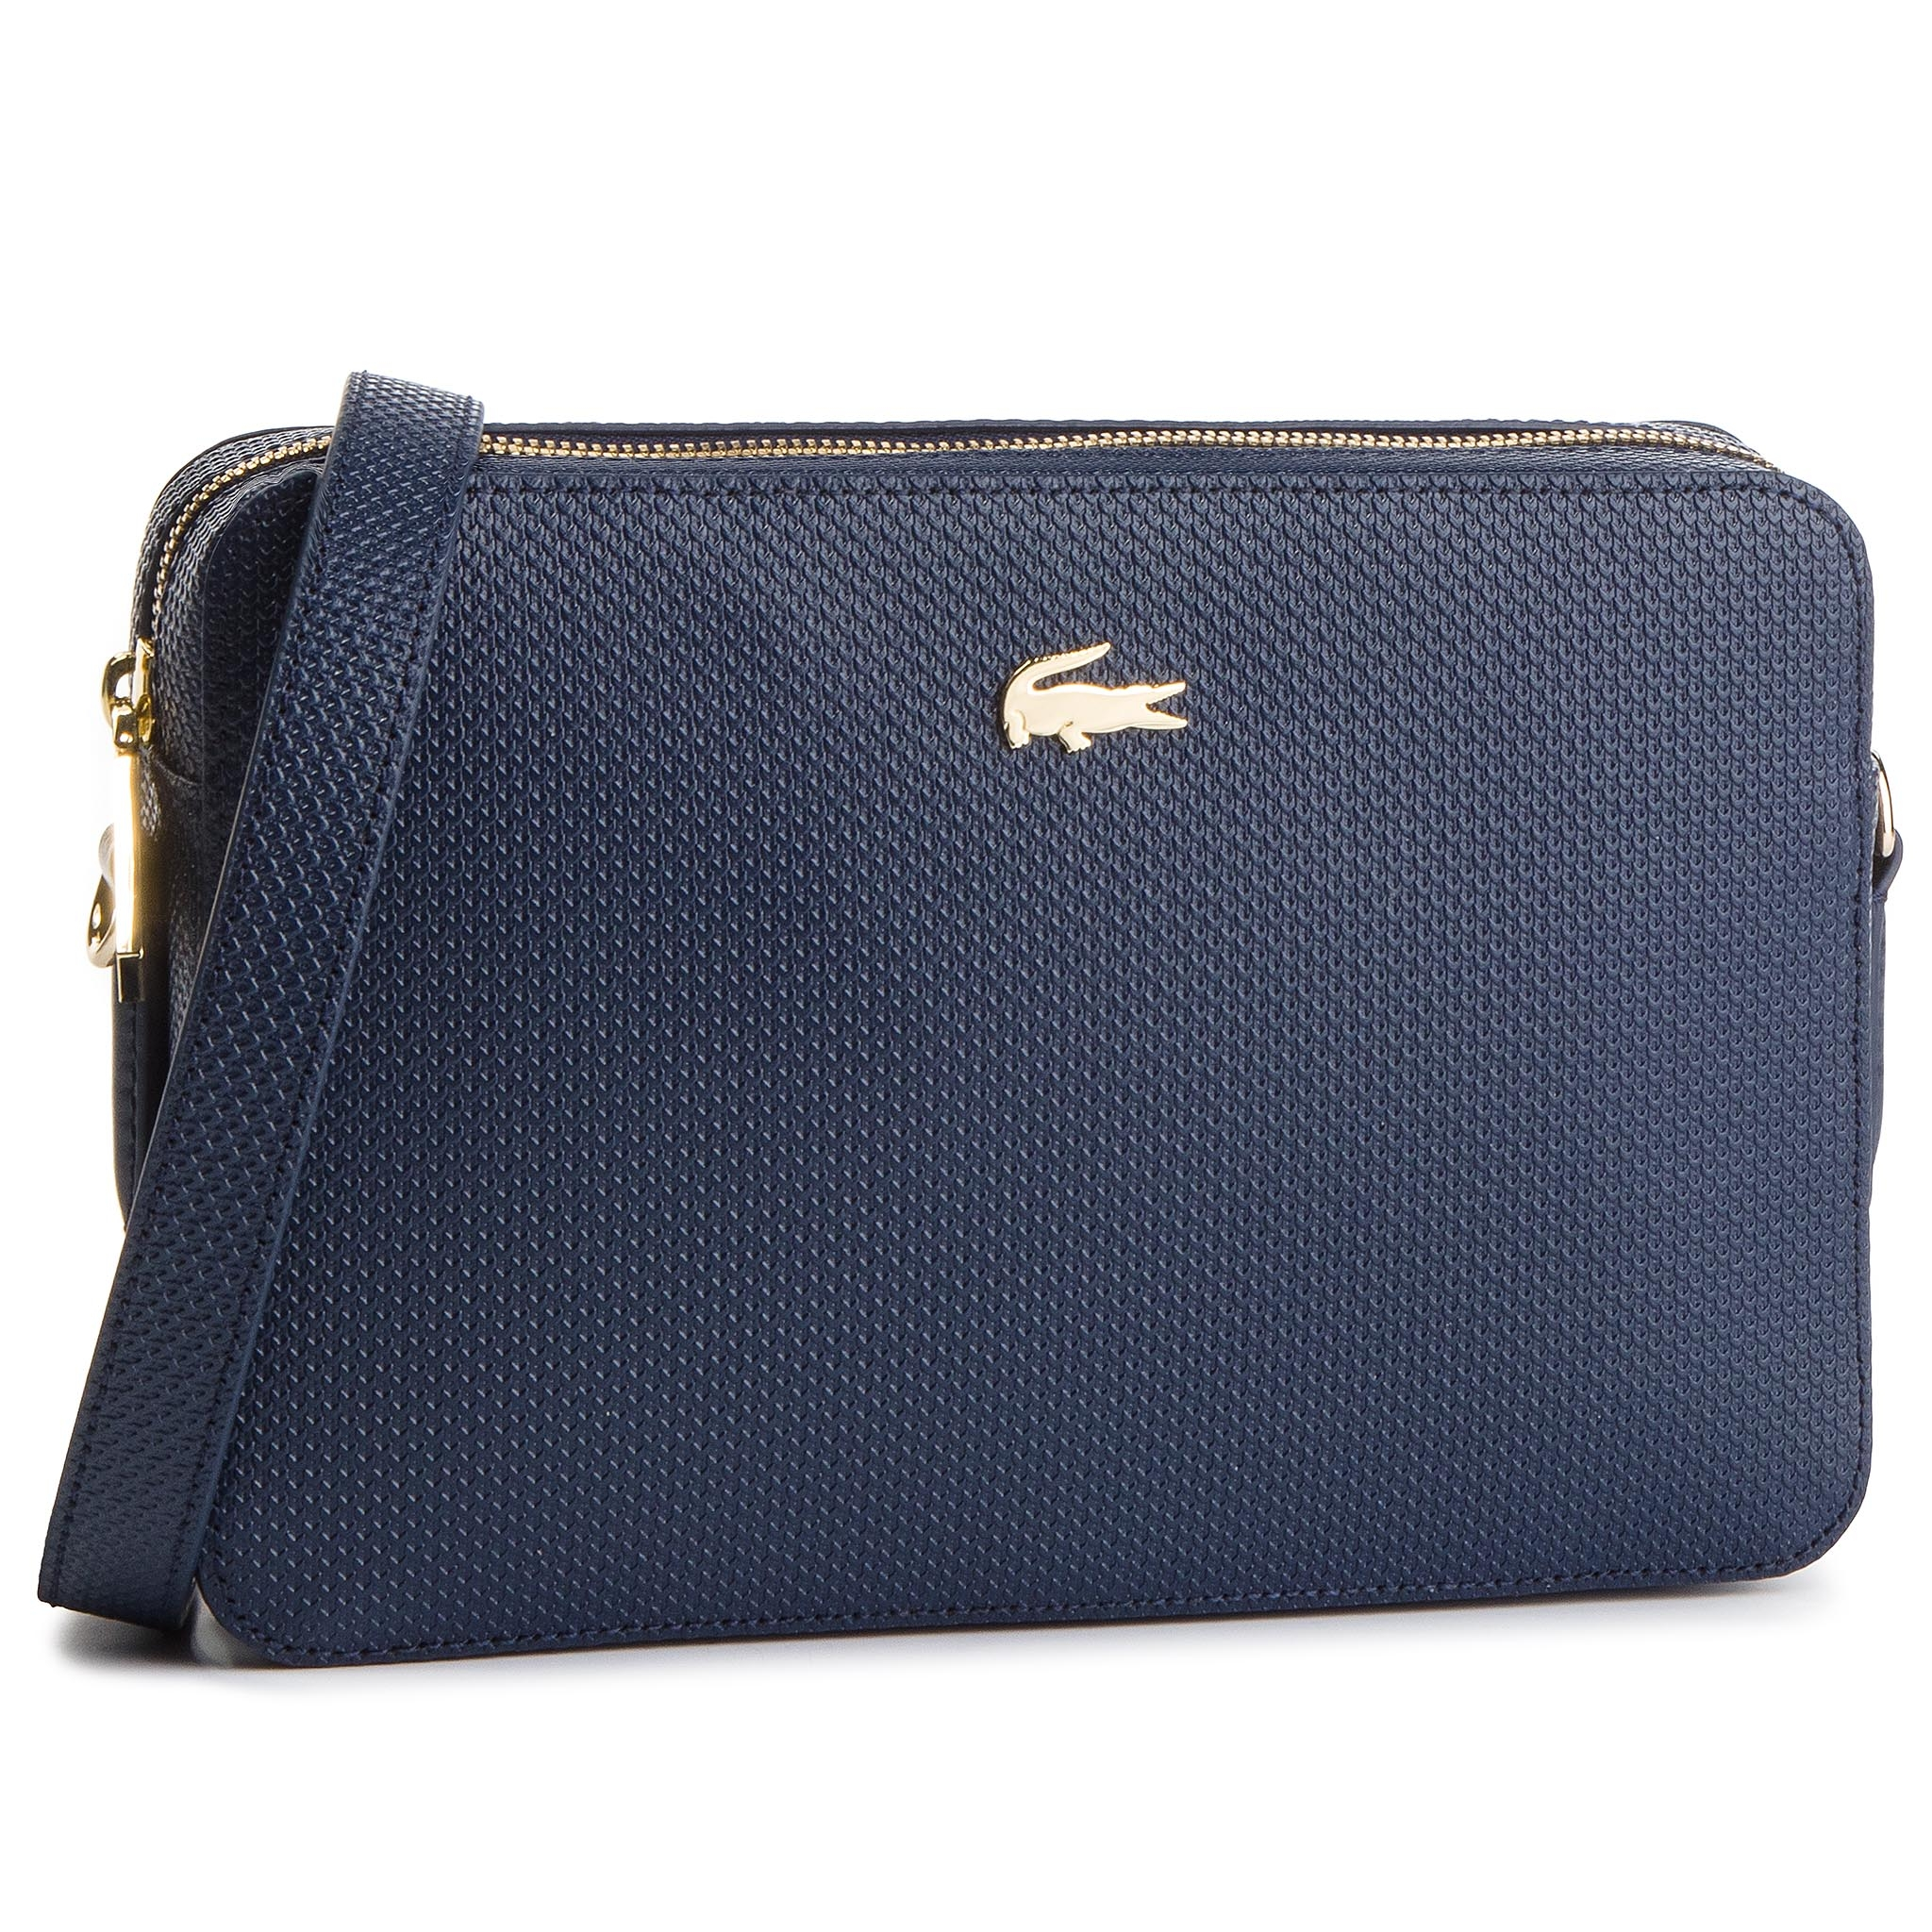 Kabelka LACOSTE - Square Crossover Bag NF2564CE Peacoat 021 - Glami.cz 631b3720320